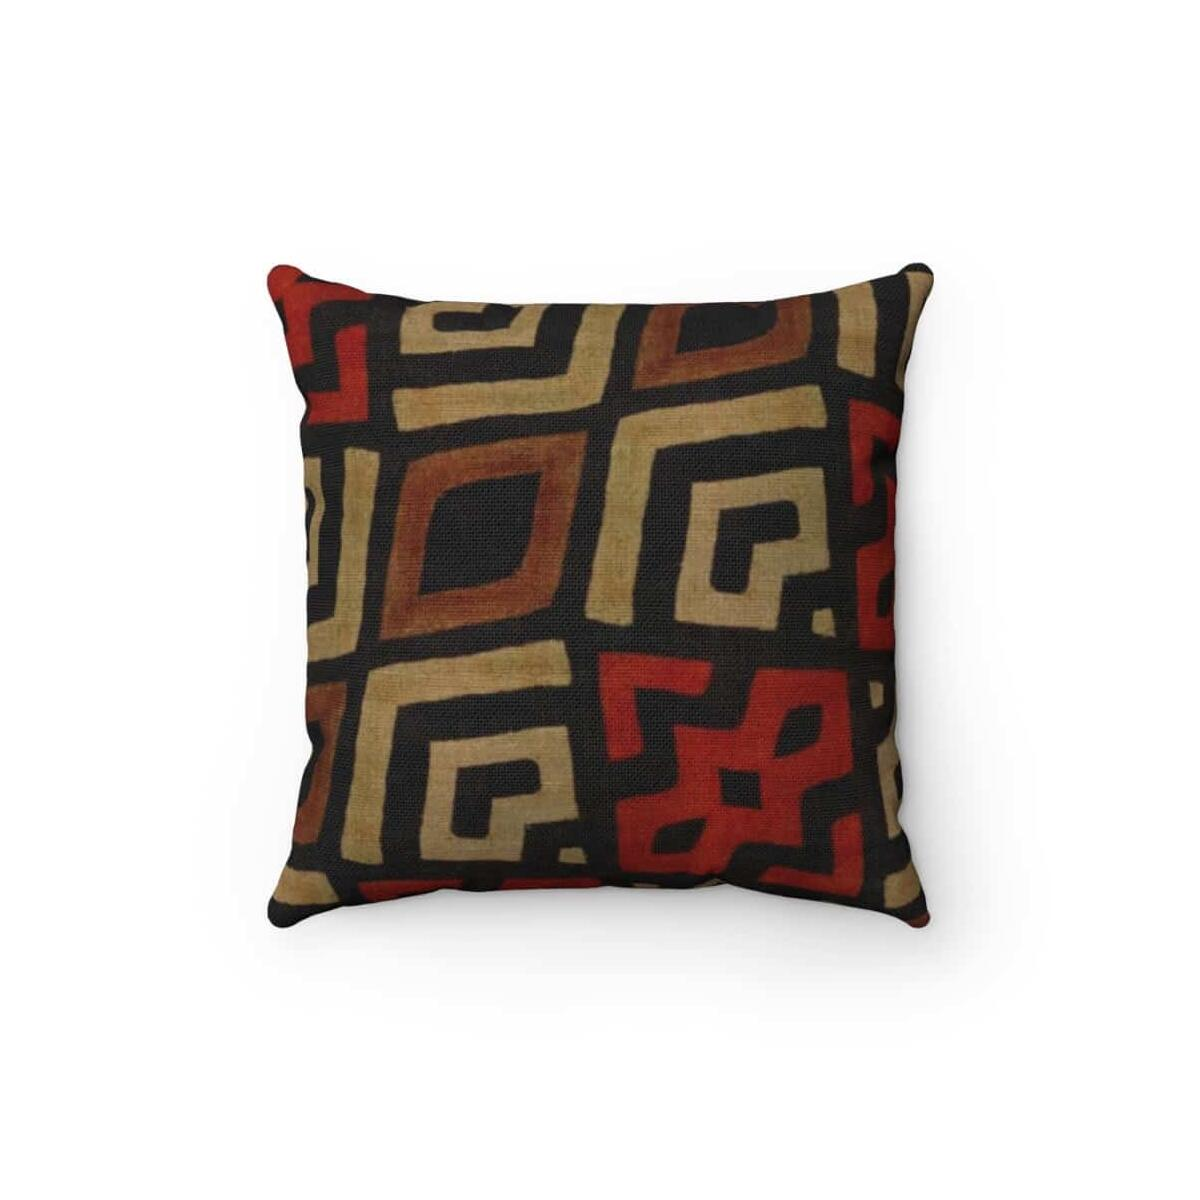 Bogolan Mystic Red Spun Polyester Square Pillow, 20